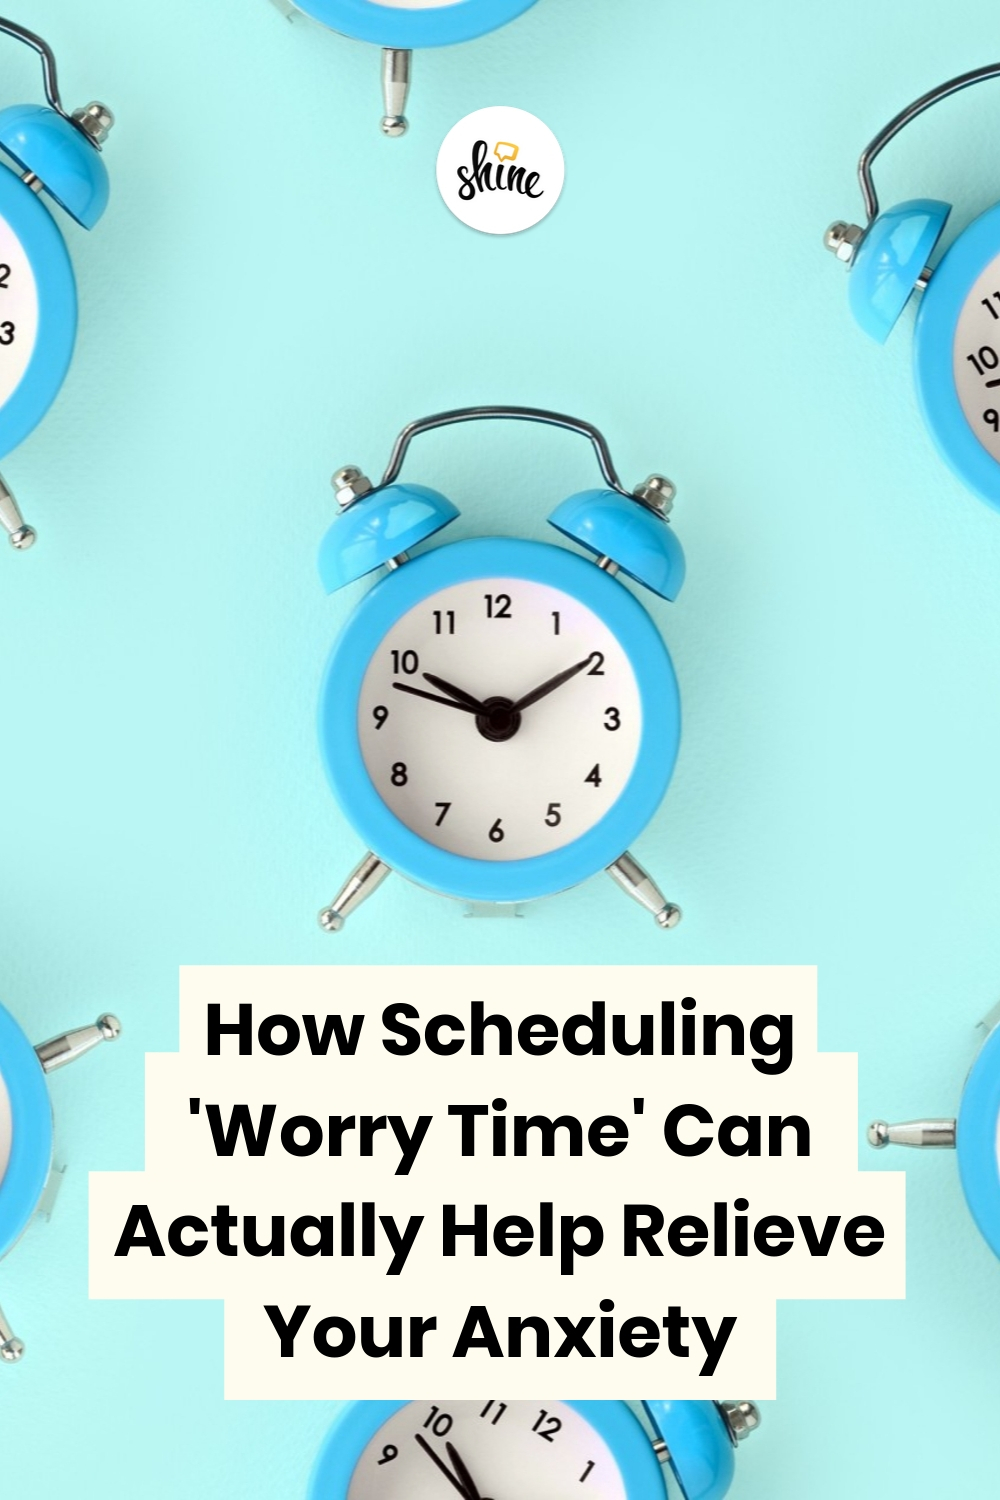 Schedule Worry Time Can Help Relieve Anxiety